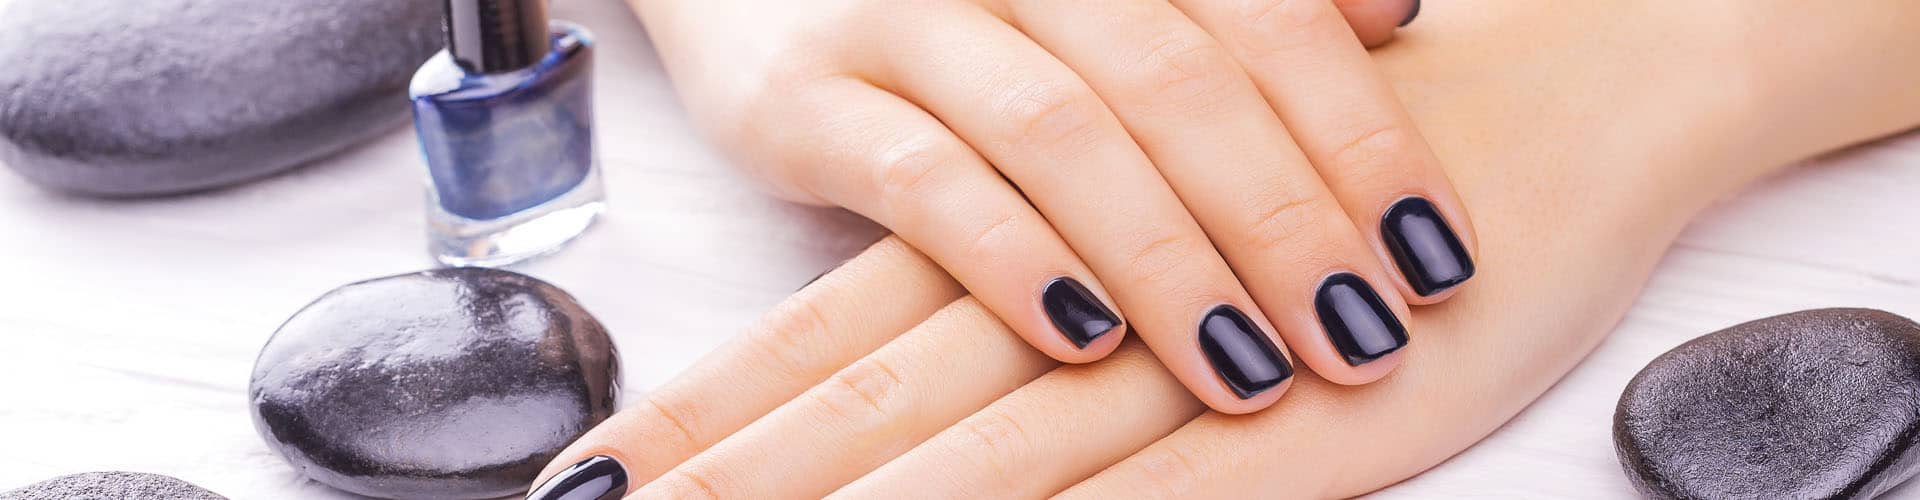 Best Natural Nail Polish 2019 – The Complete Nail Polish Buying Guide